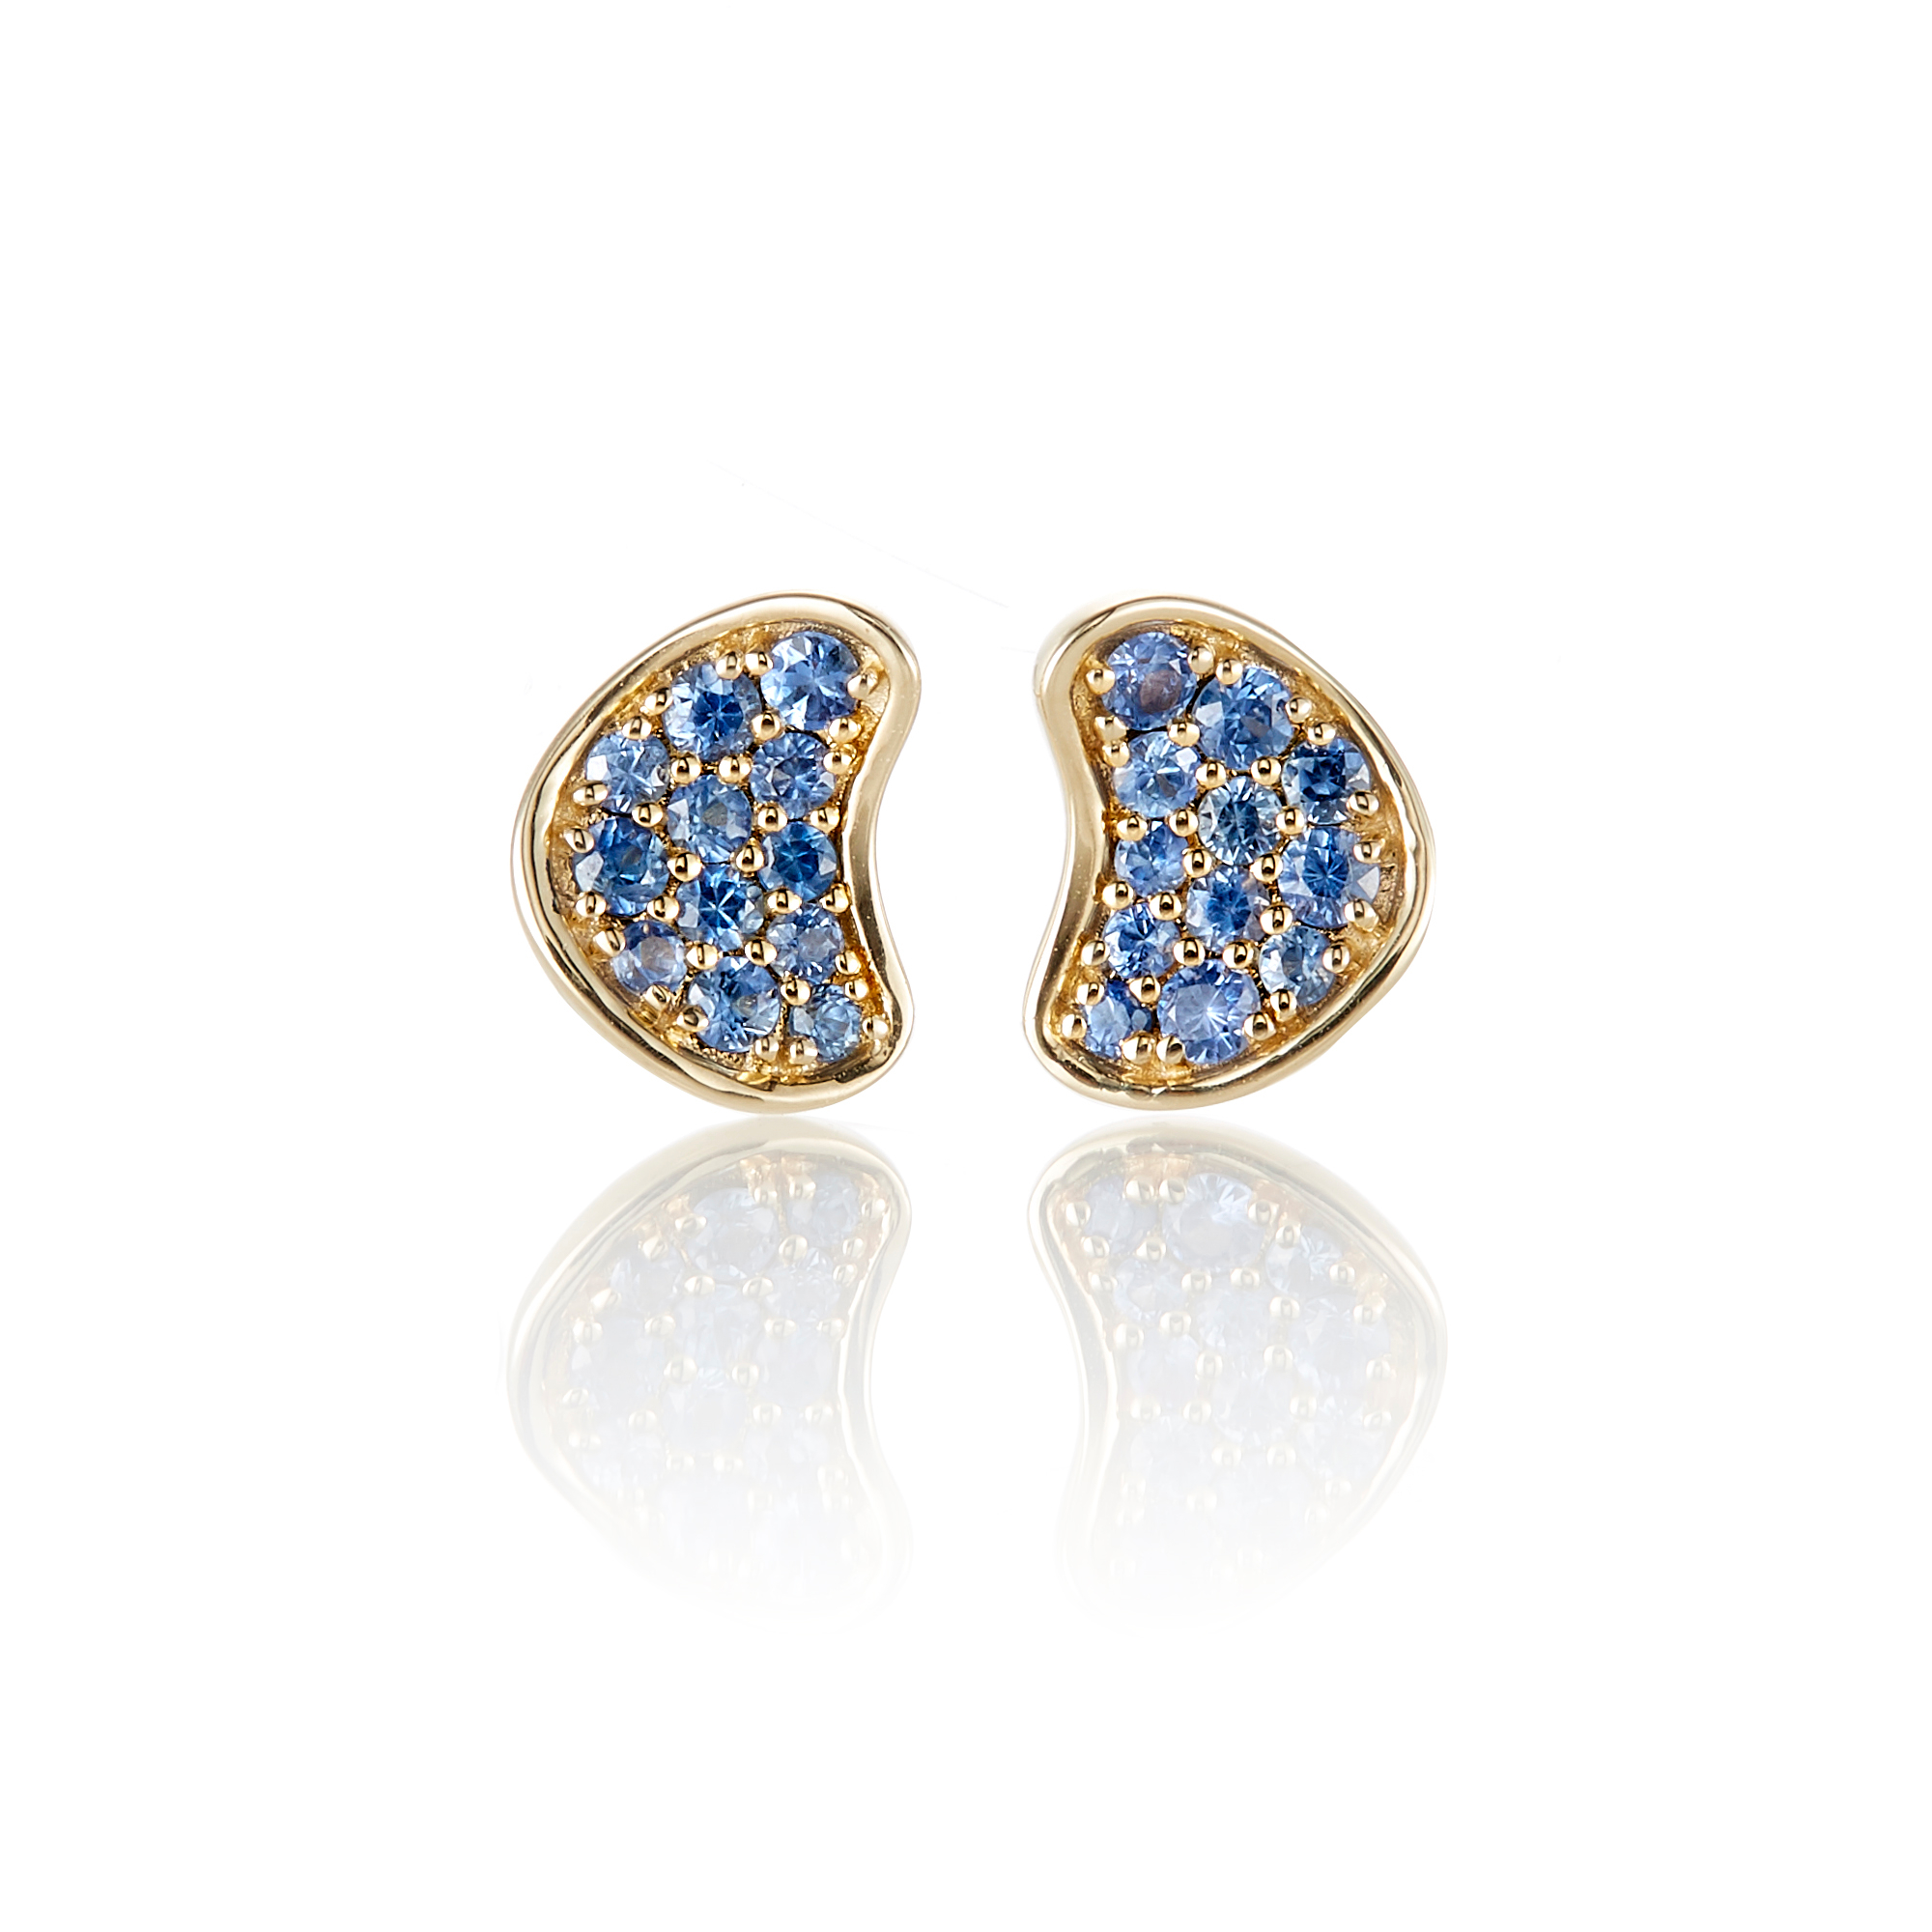 Gump's Blue Sapphire Organic Stud Earrings